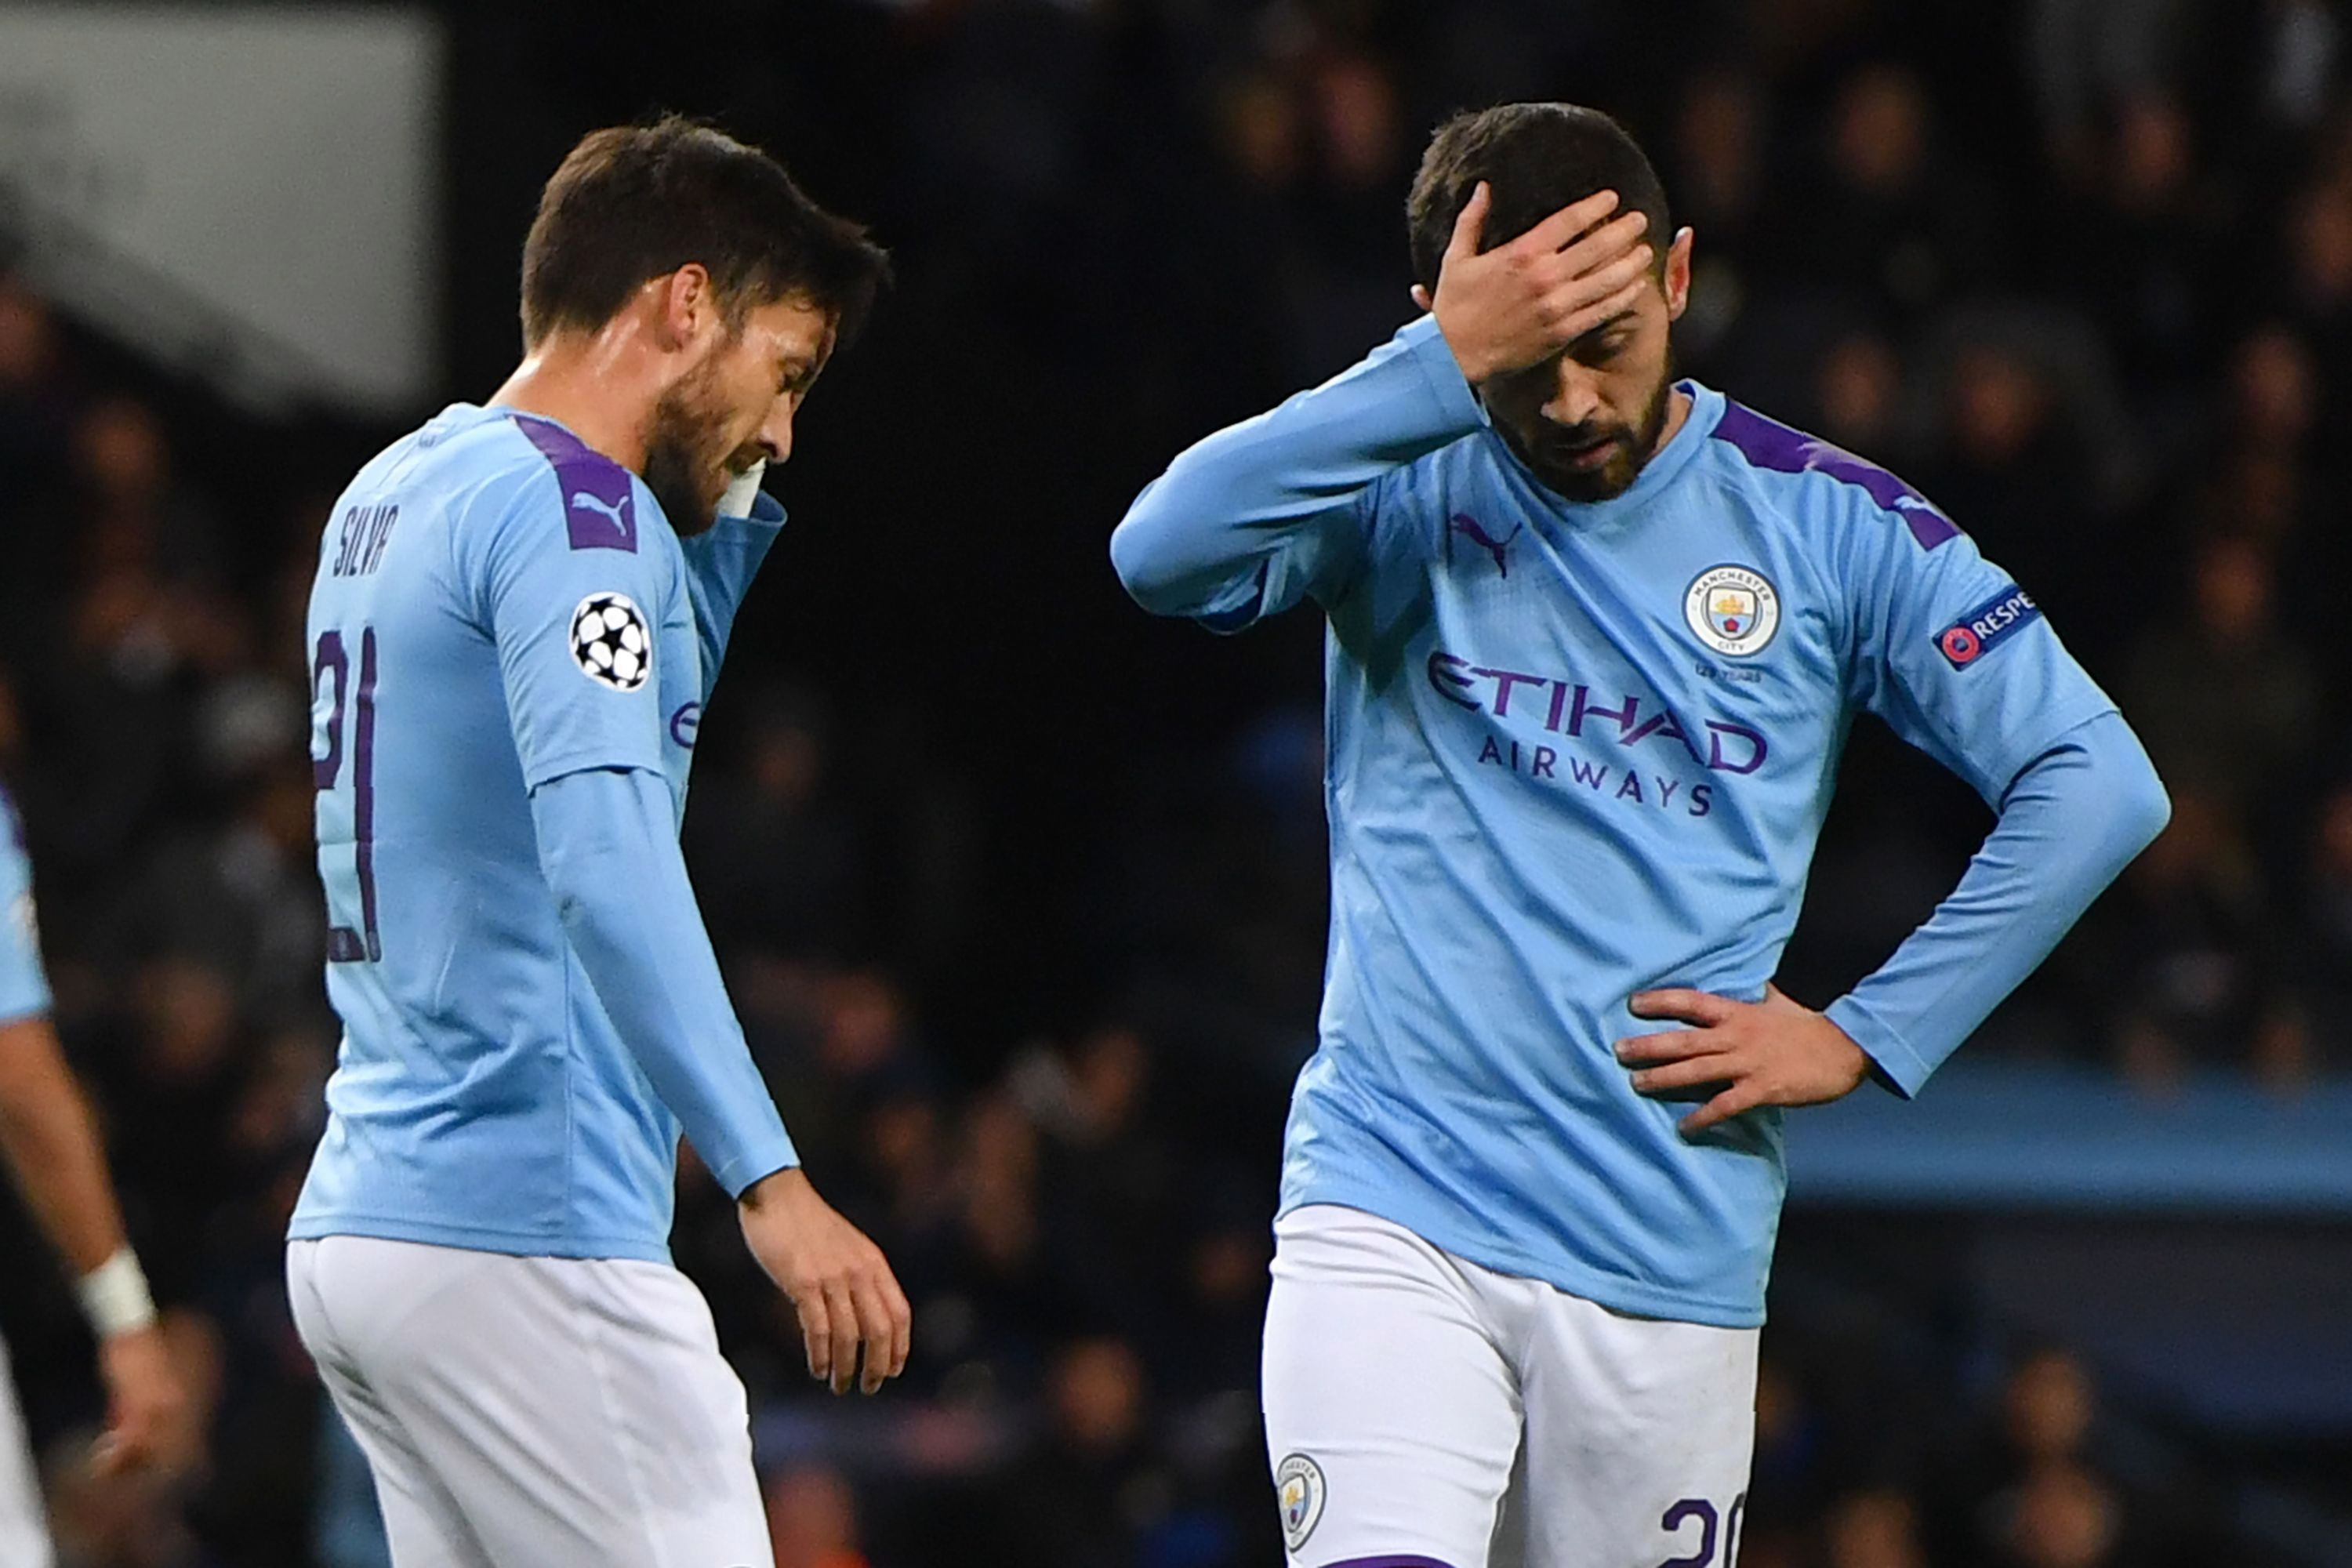 Man City warned they face 'months' of anxiously awaiting